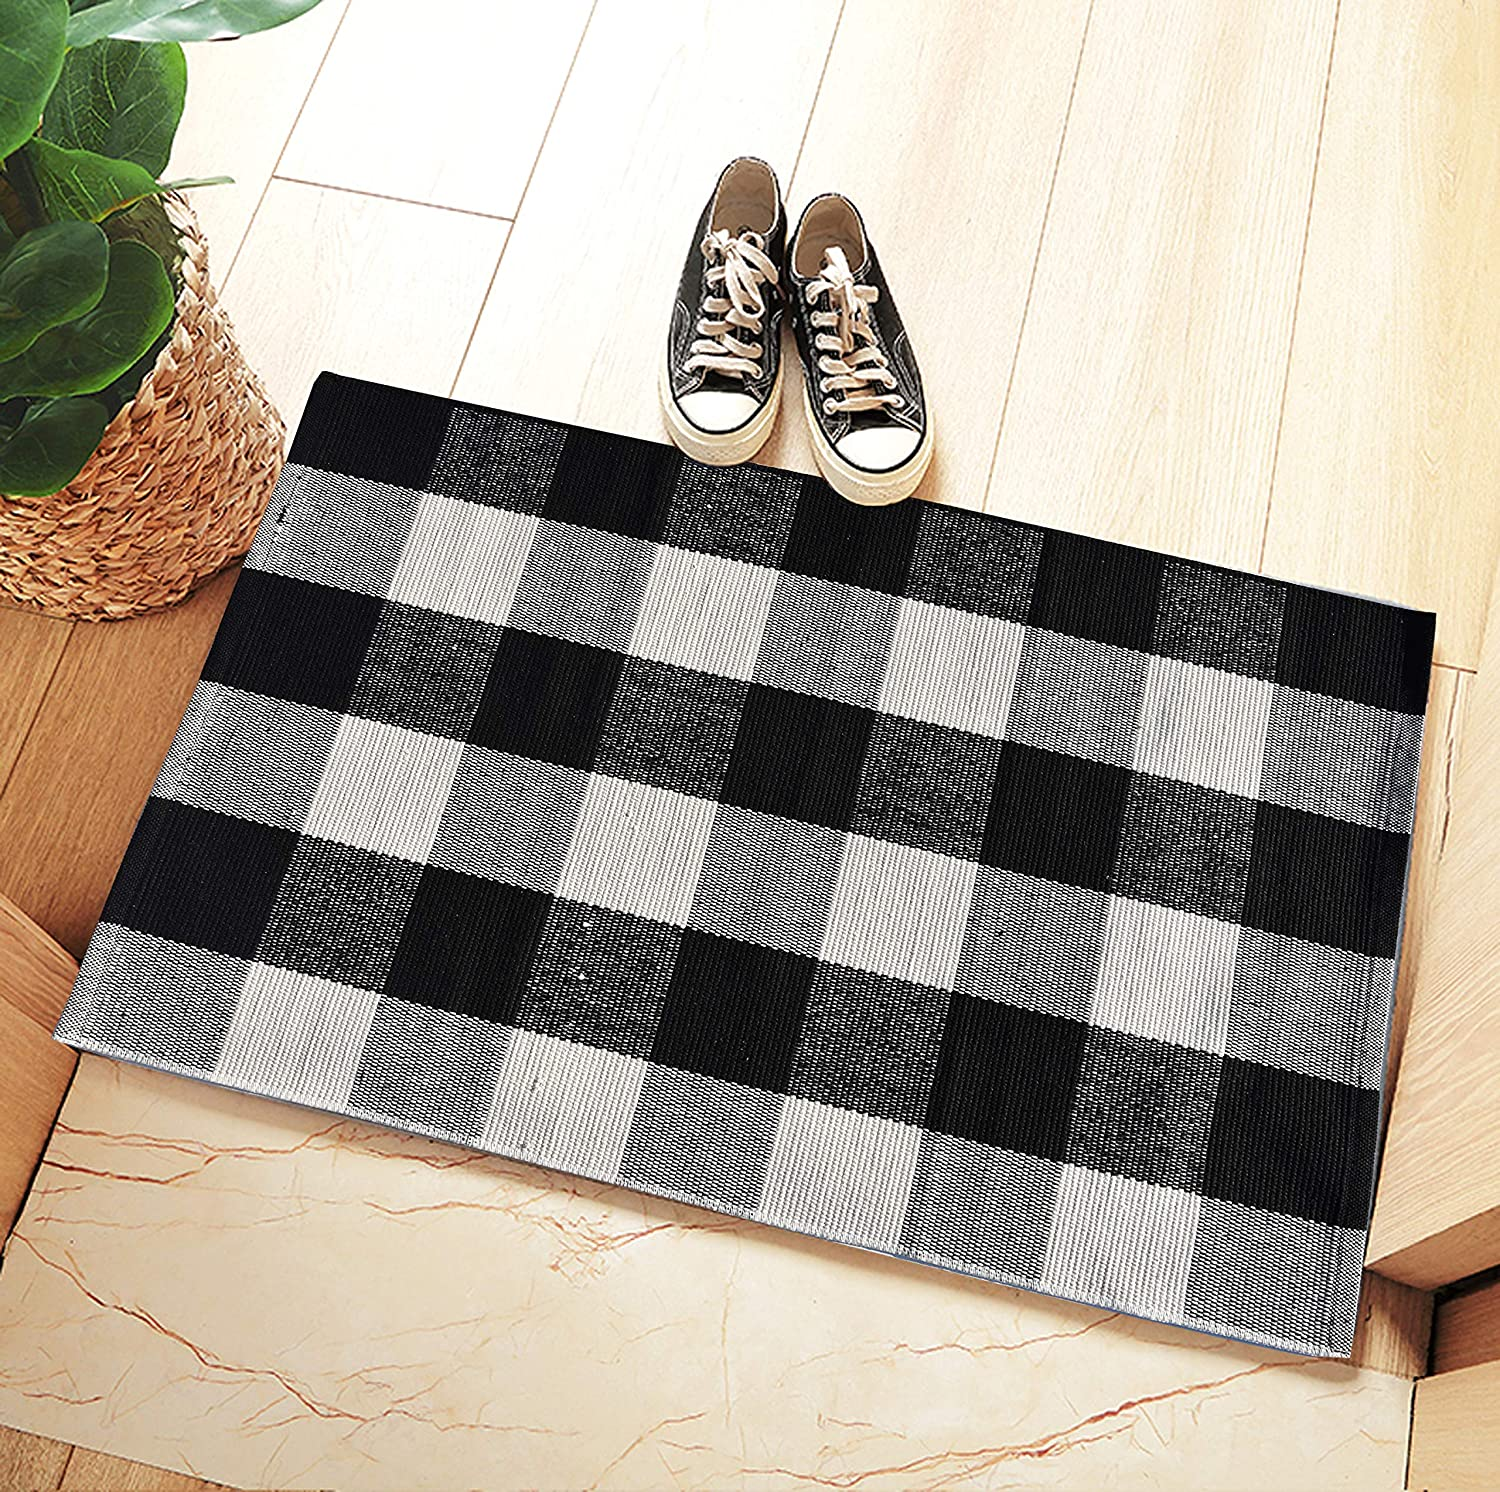 "Ecoshome Cotton Bath Runner Checkered Plaid Area Rug Door Mat for Entry Way Washable Carpet for Kitchen (24"" x 35"", Black and White)"